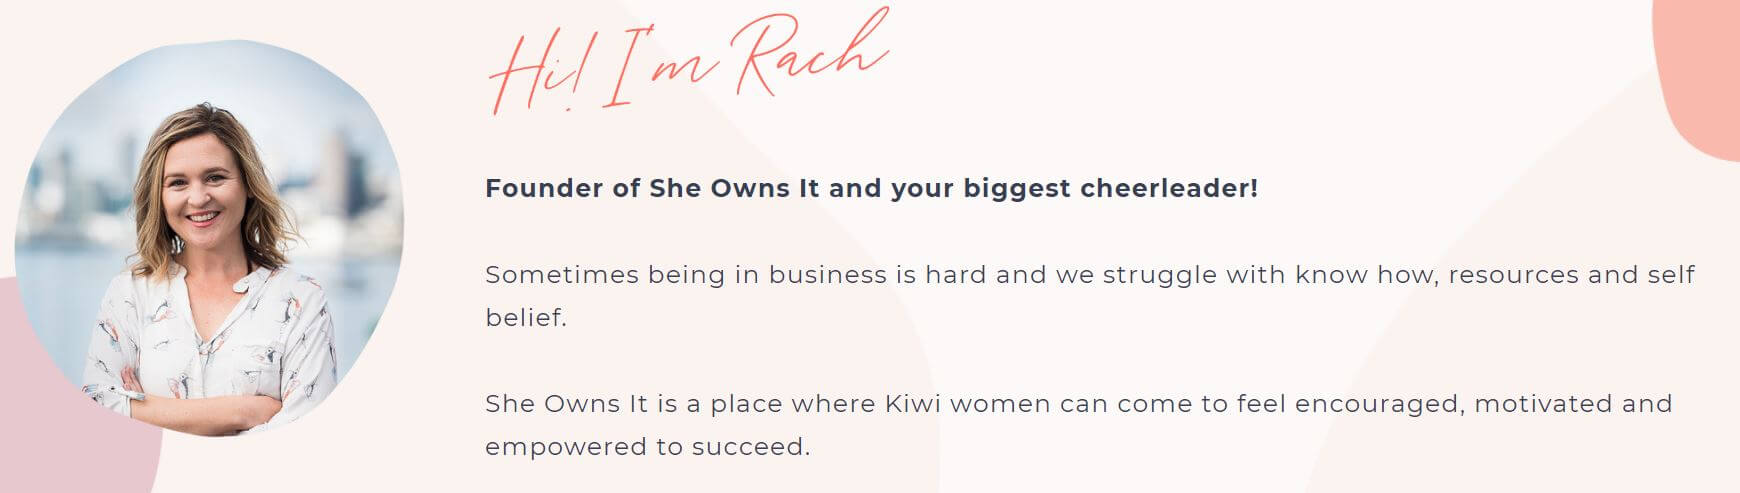 She Owns It NZ - Lucy Bekker